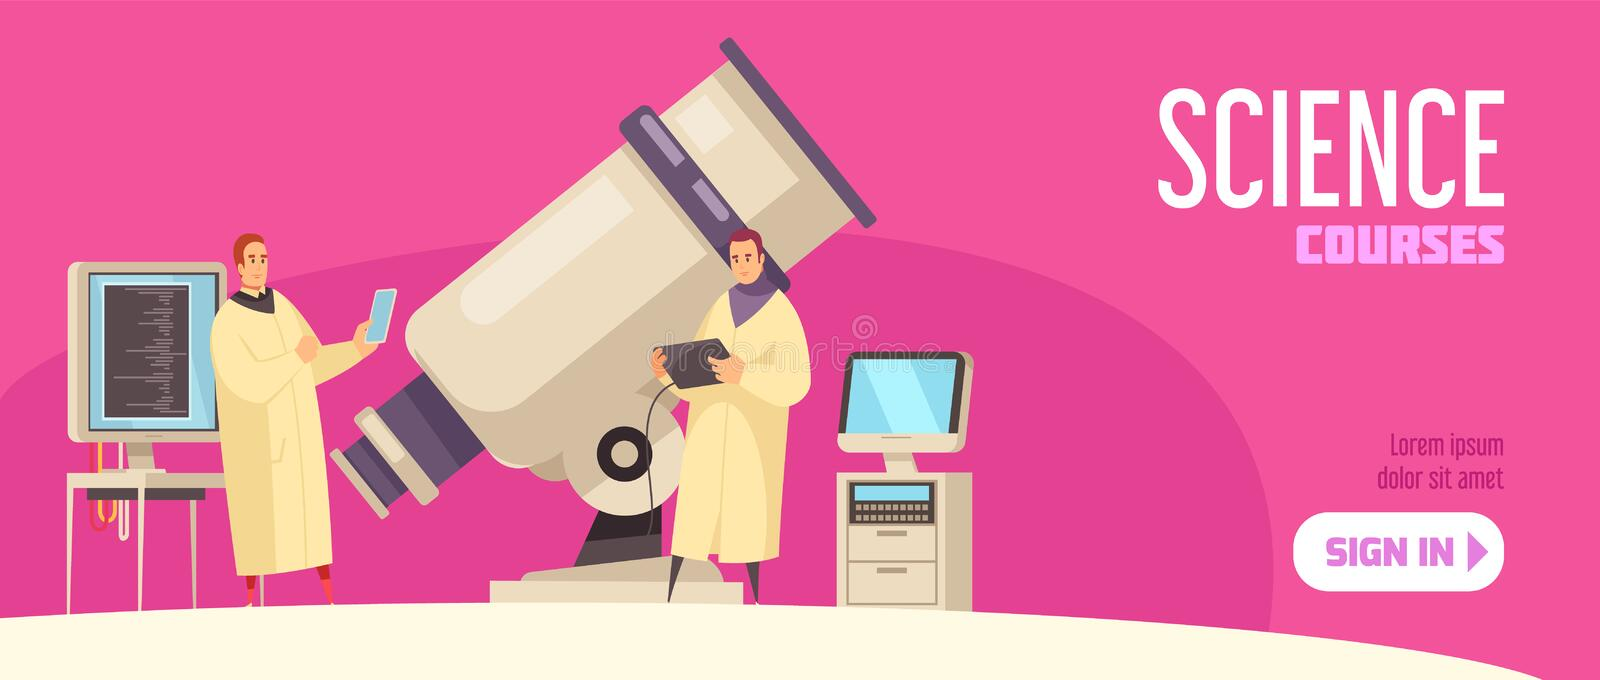 Science Courses Horizontal Banner vector illustration